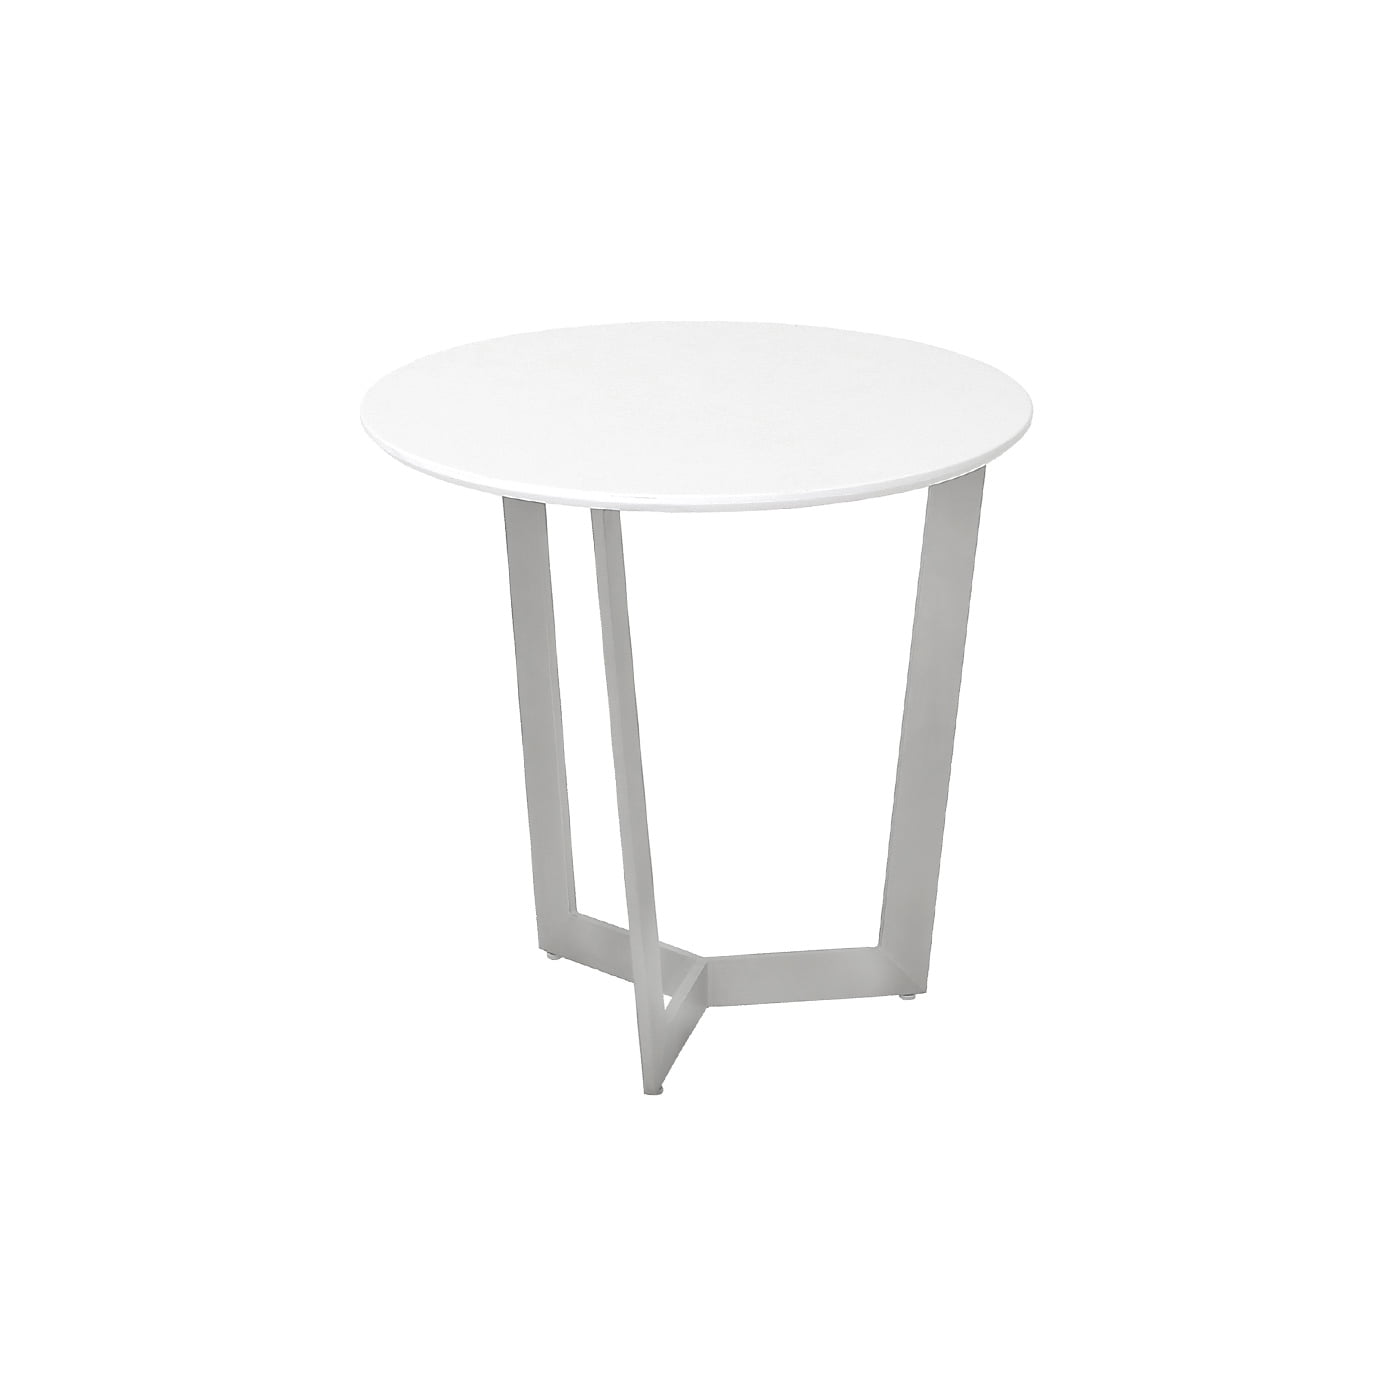 Glass Lamp Tables Ireland Scet Salconi High Gloss Round End Table Redtree Furniture Keadue